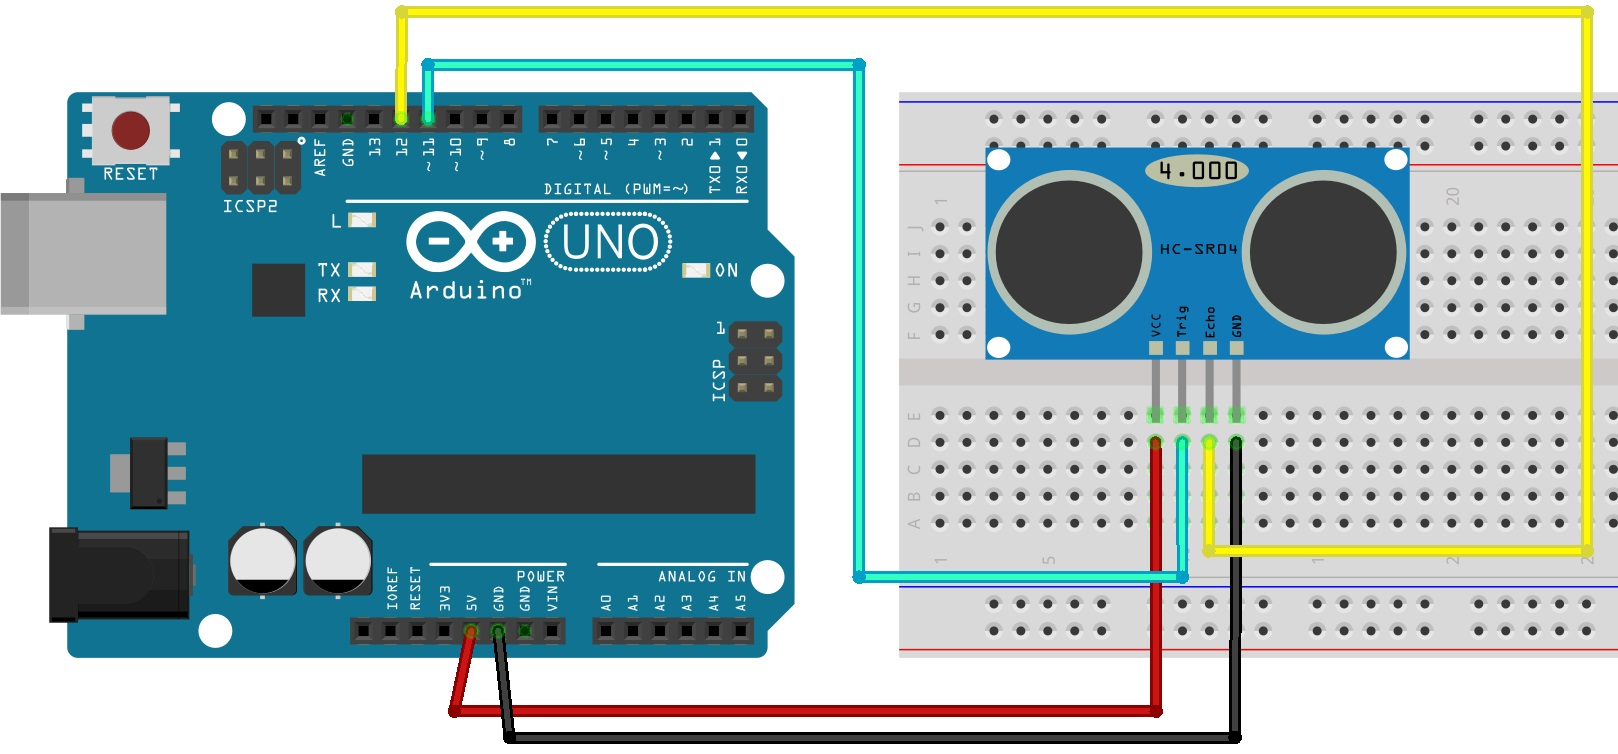 Complete Guide For Ultrasonic Sensor Hc Sr04 With Arduino Random The We Will Use In This Circuit Is A Tcs3200 Color Following Table Shows Connections You Need To Make